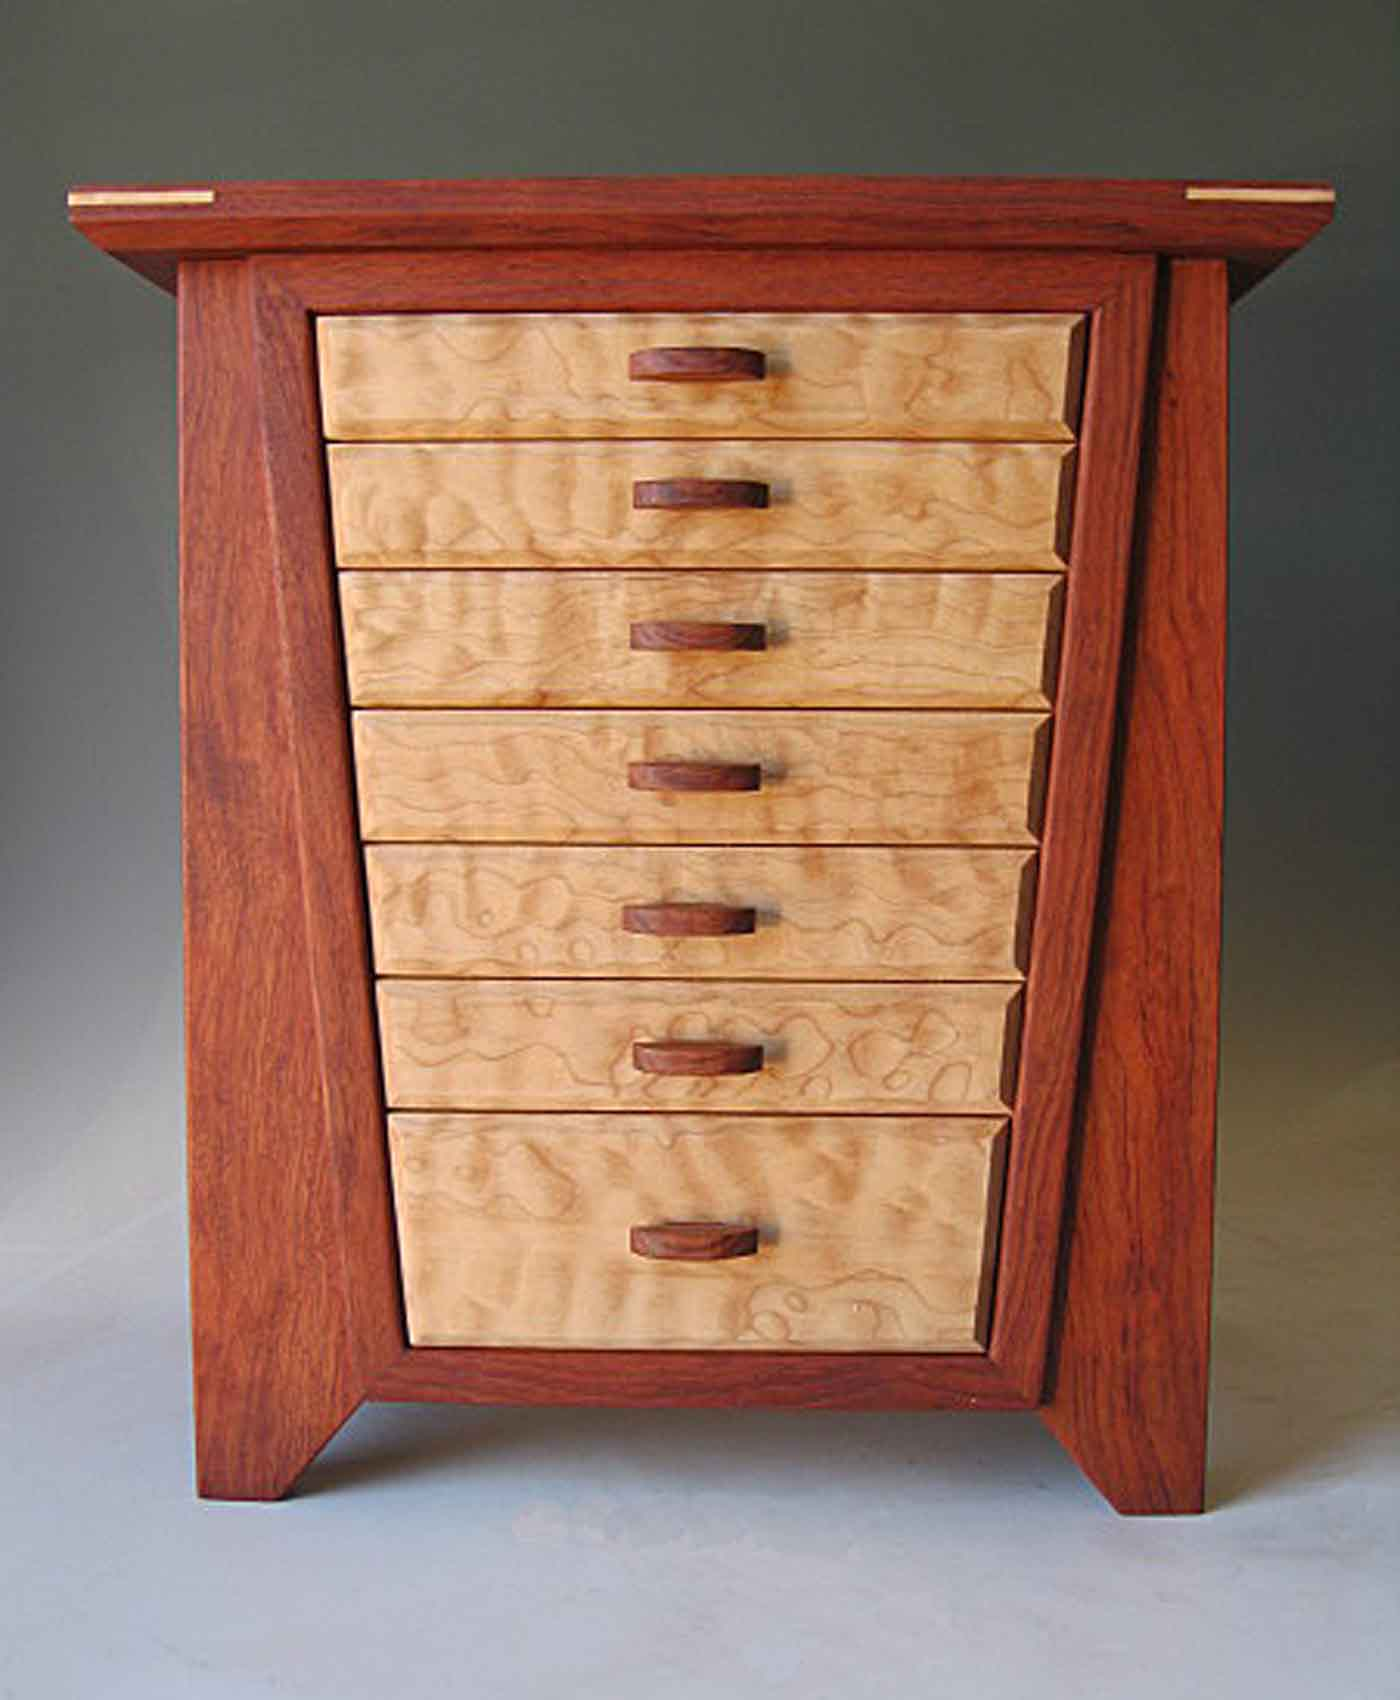 Handmade quality jewelry box made of bubinga wood and burl; with seven drawers